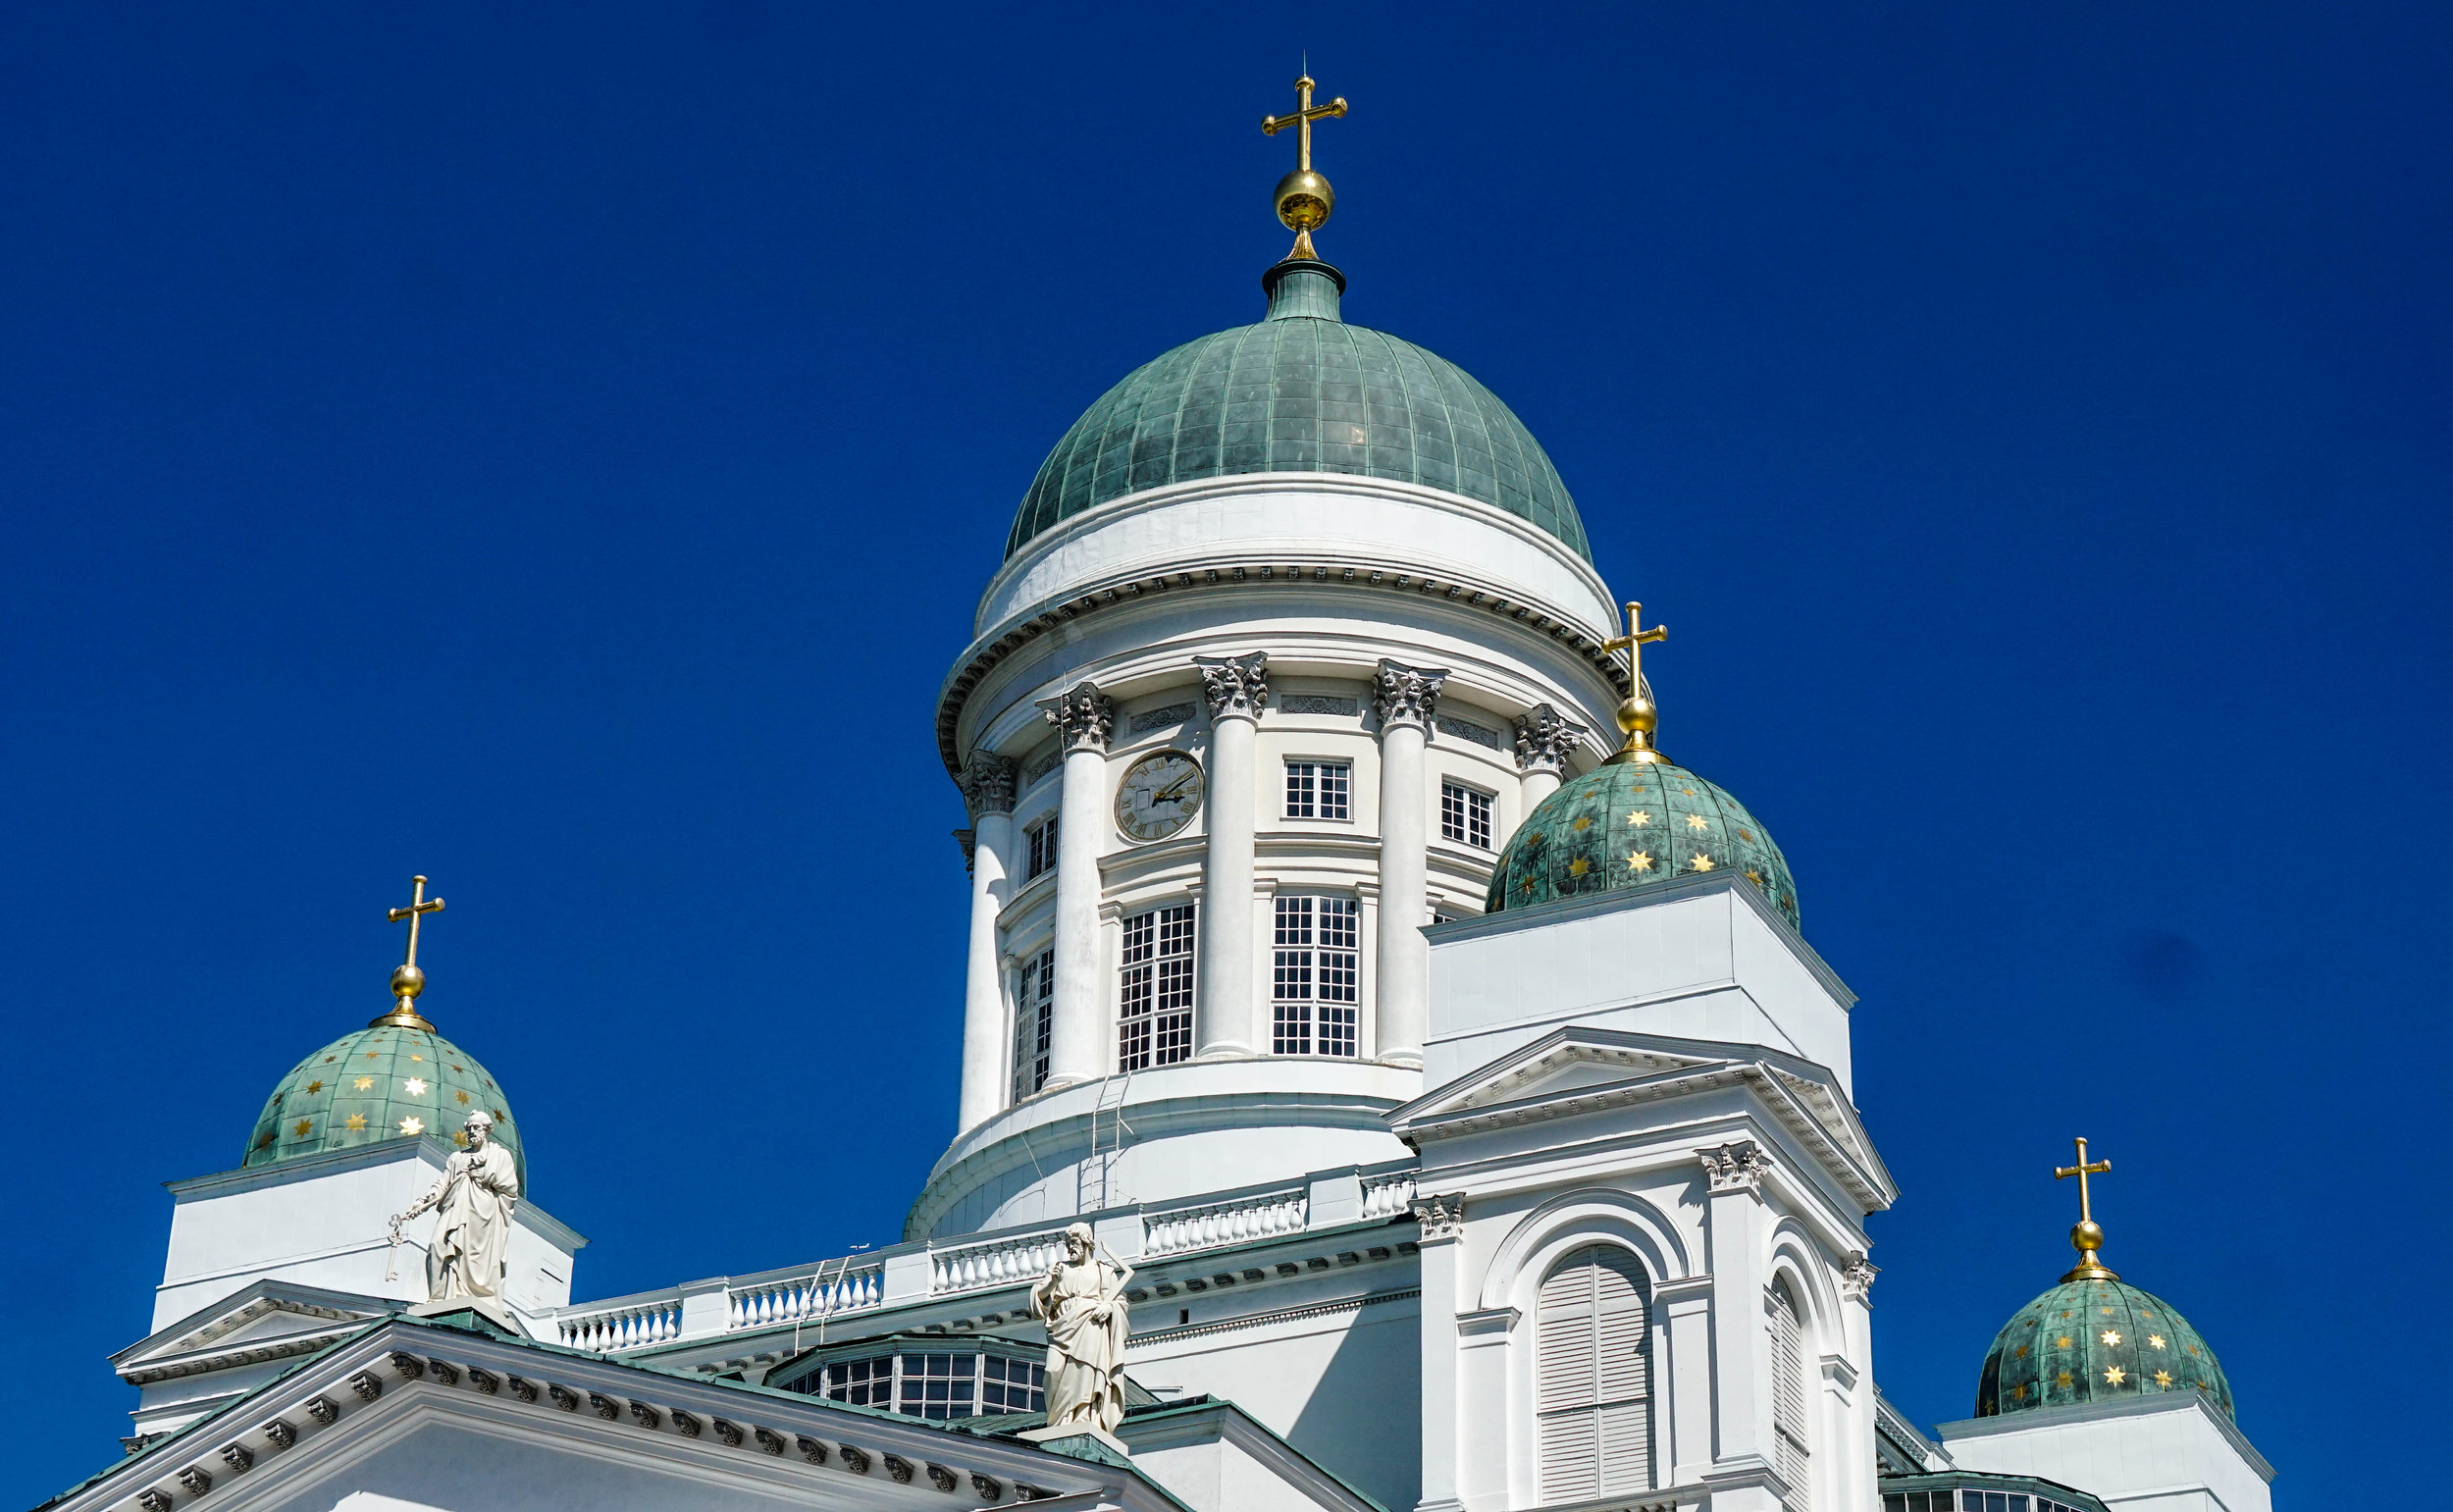 The Lutheran Cathedral on Senate Square in Helsinki, like a beacon to find the city.